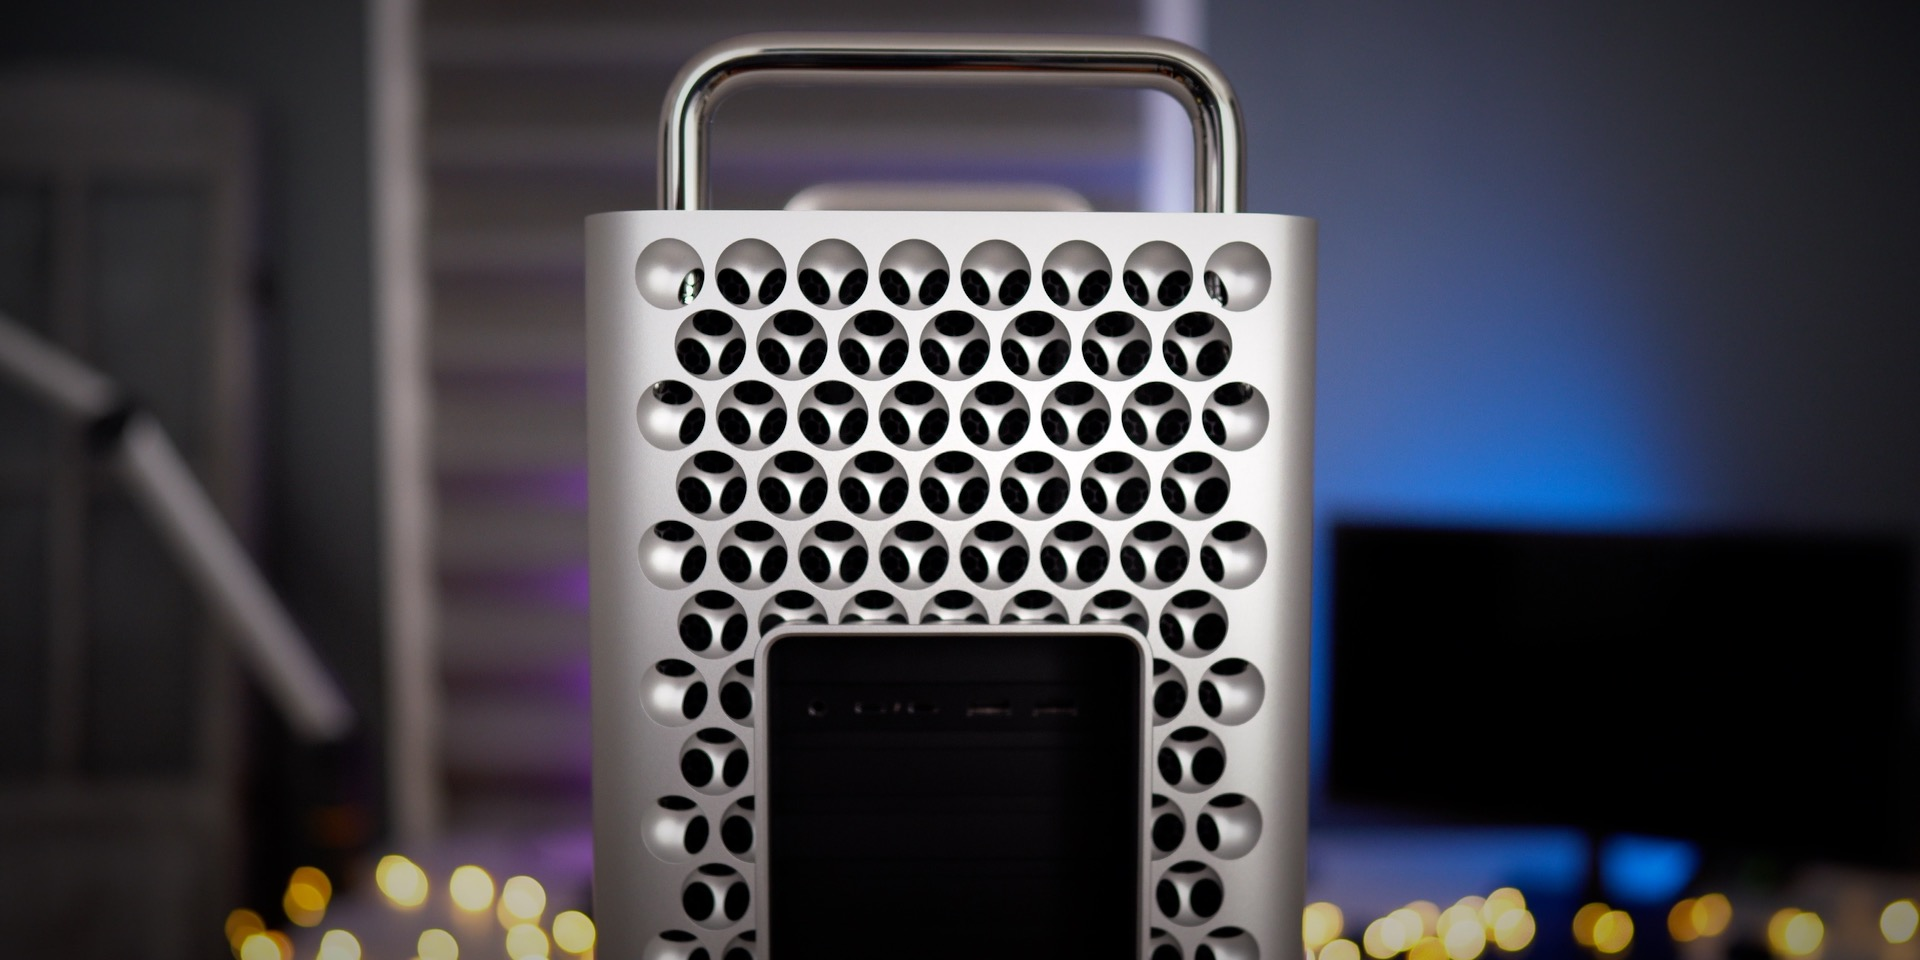 Rear of Mac Pro